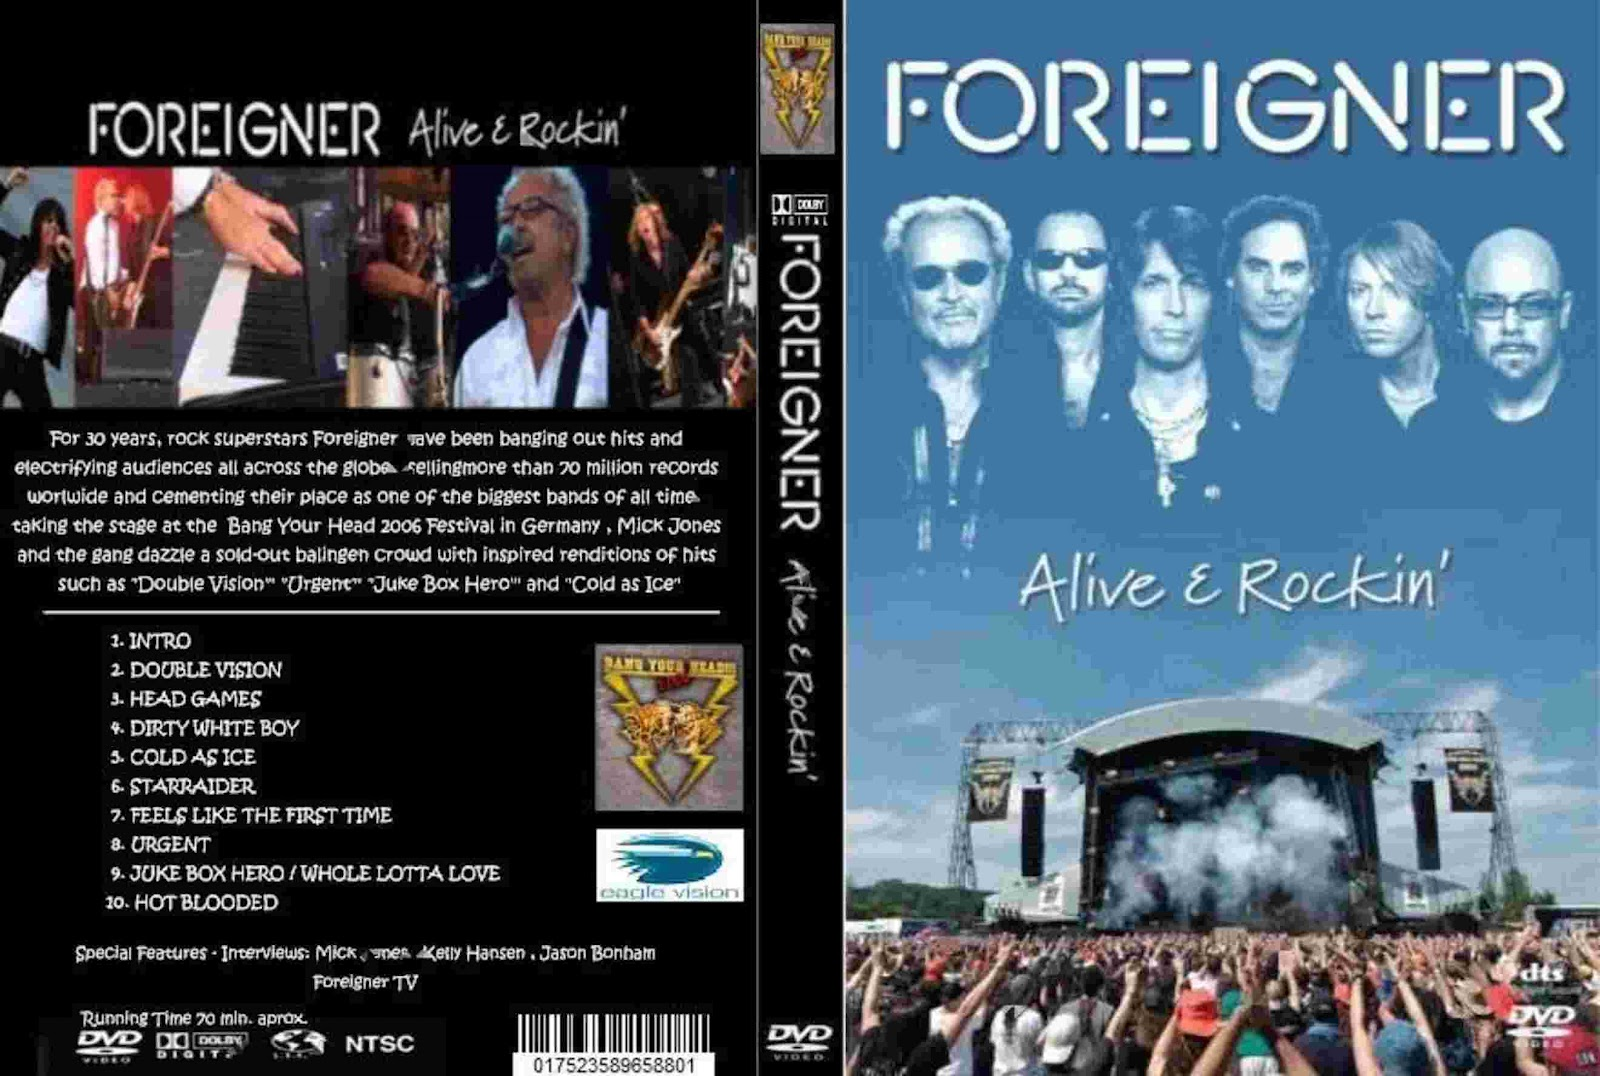 http://2.bp.blogspot.com/-EgBwAYh_zyU/T7V_eScp62I/AAAAAAAAEbk/qDseBs5m614/s1600/Foreigner+-+Alive+And+Rockin\'+-+Front.jpg